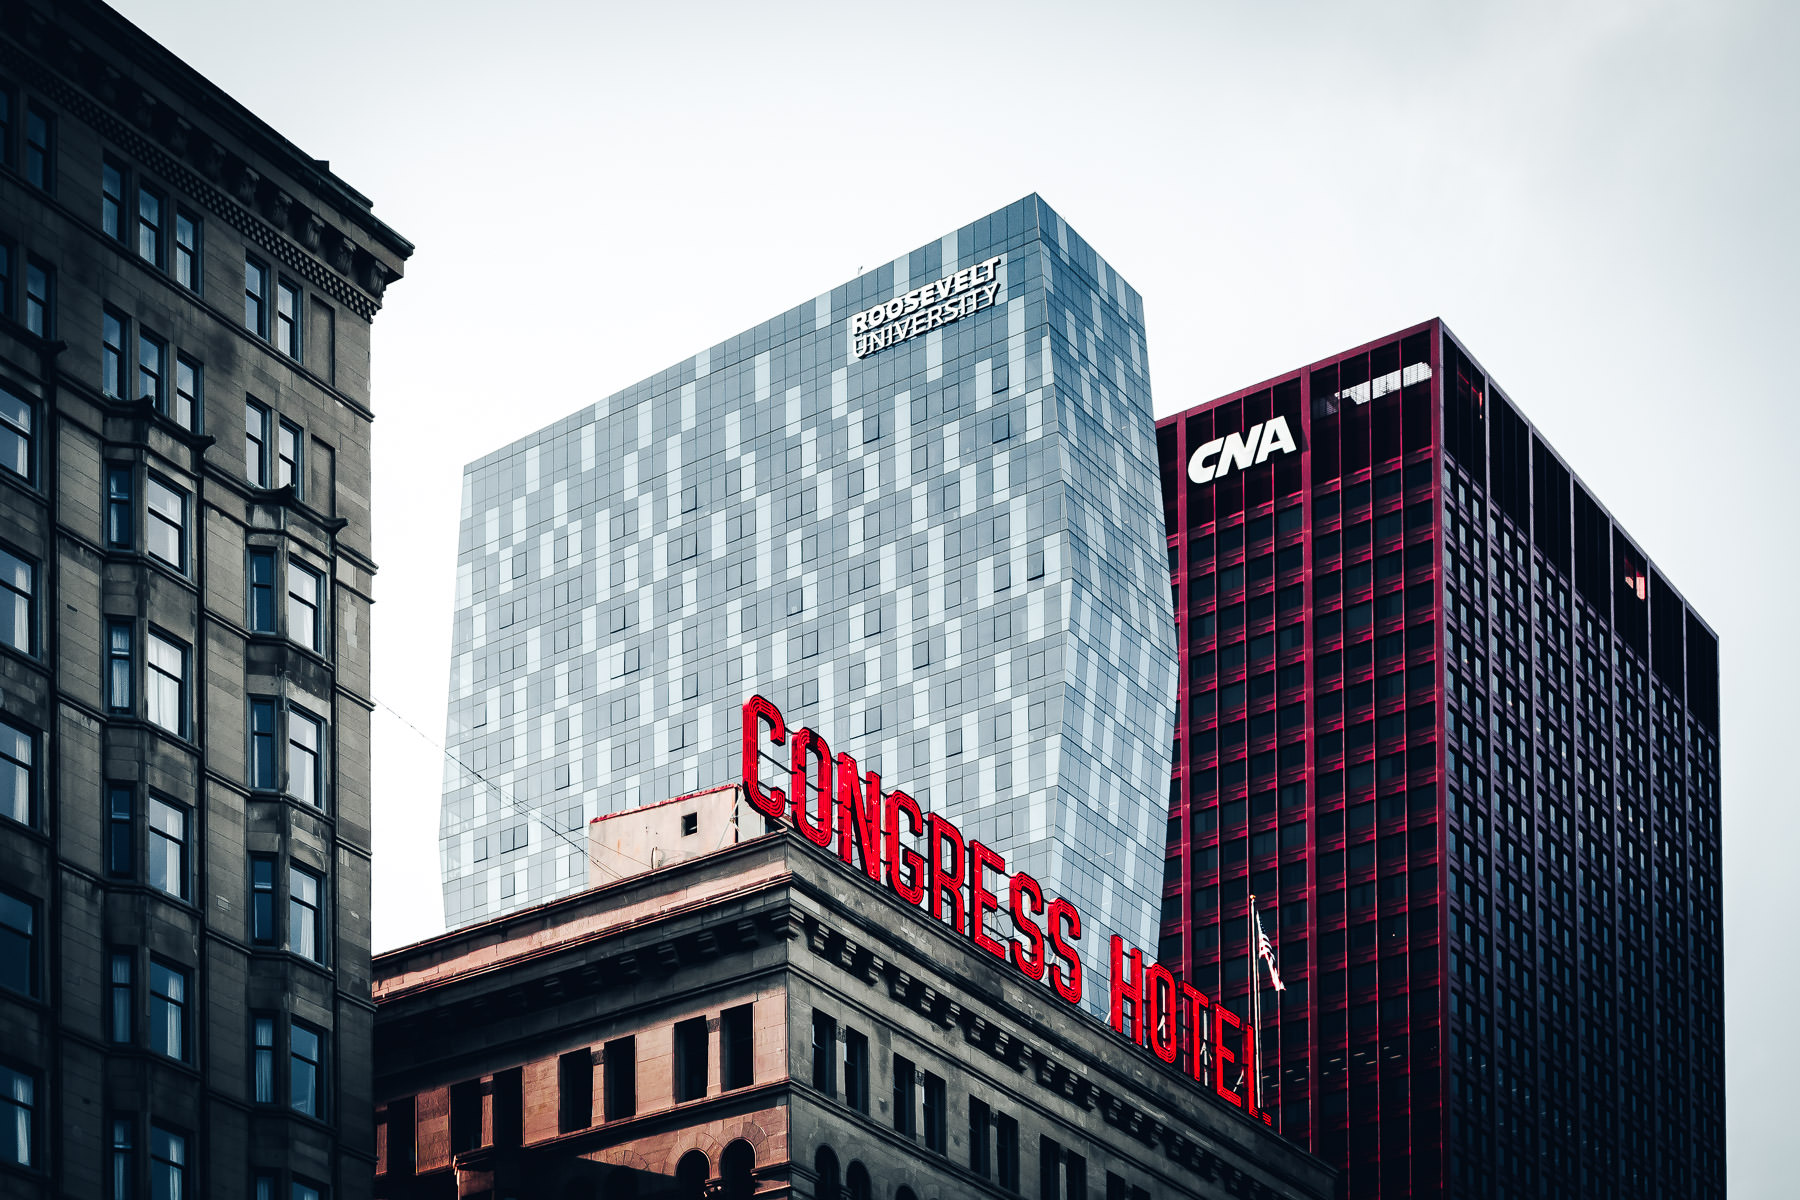 The neon sign of Chicago's Congress Hotel, overshadowed by surrounding skyscrapers.